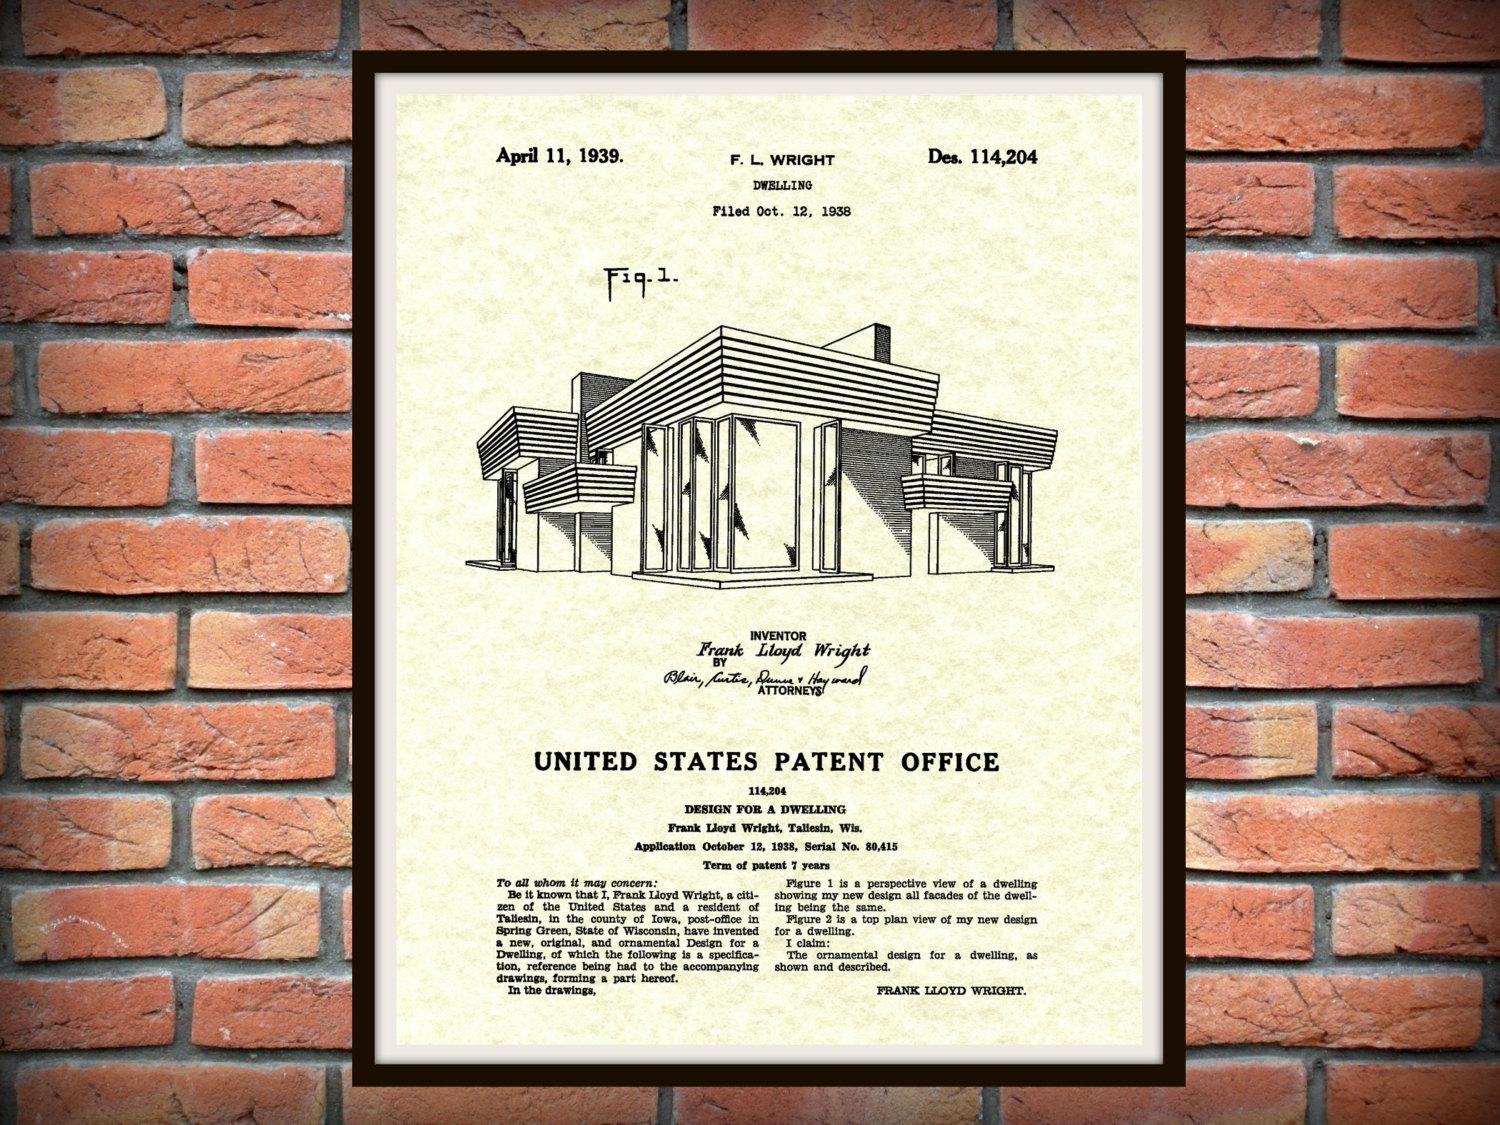 Patent 1939 Frank Lloyd Wright House Architecture – Dwelling Art Regarding Frank Lloyd Wright Wall Art (View 3 of 20)